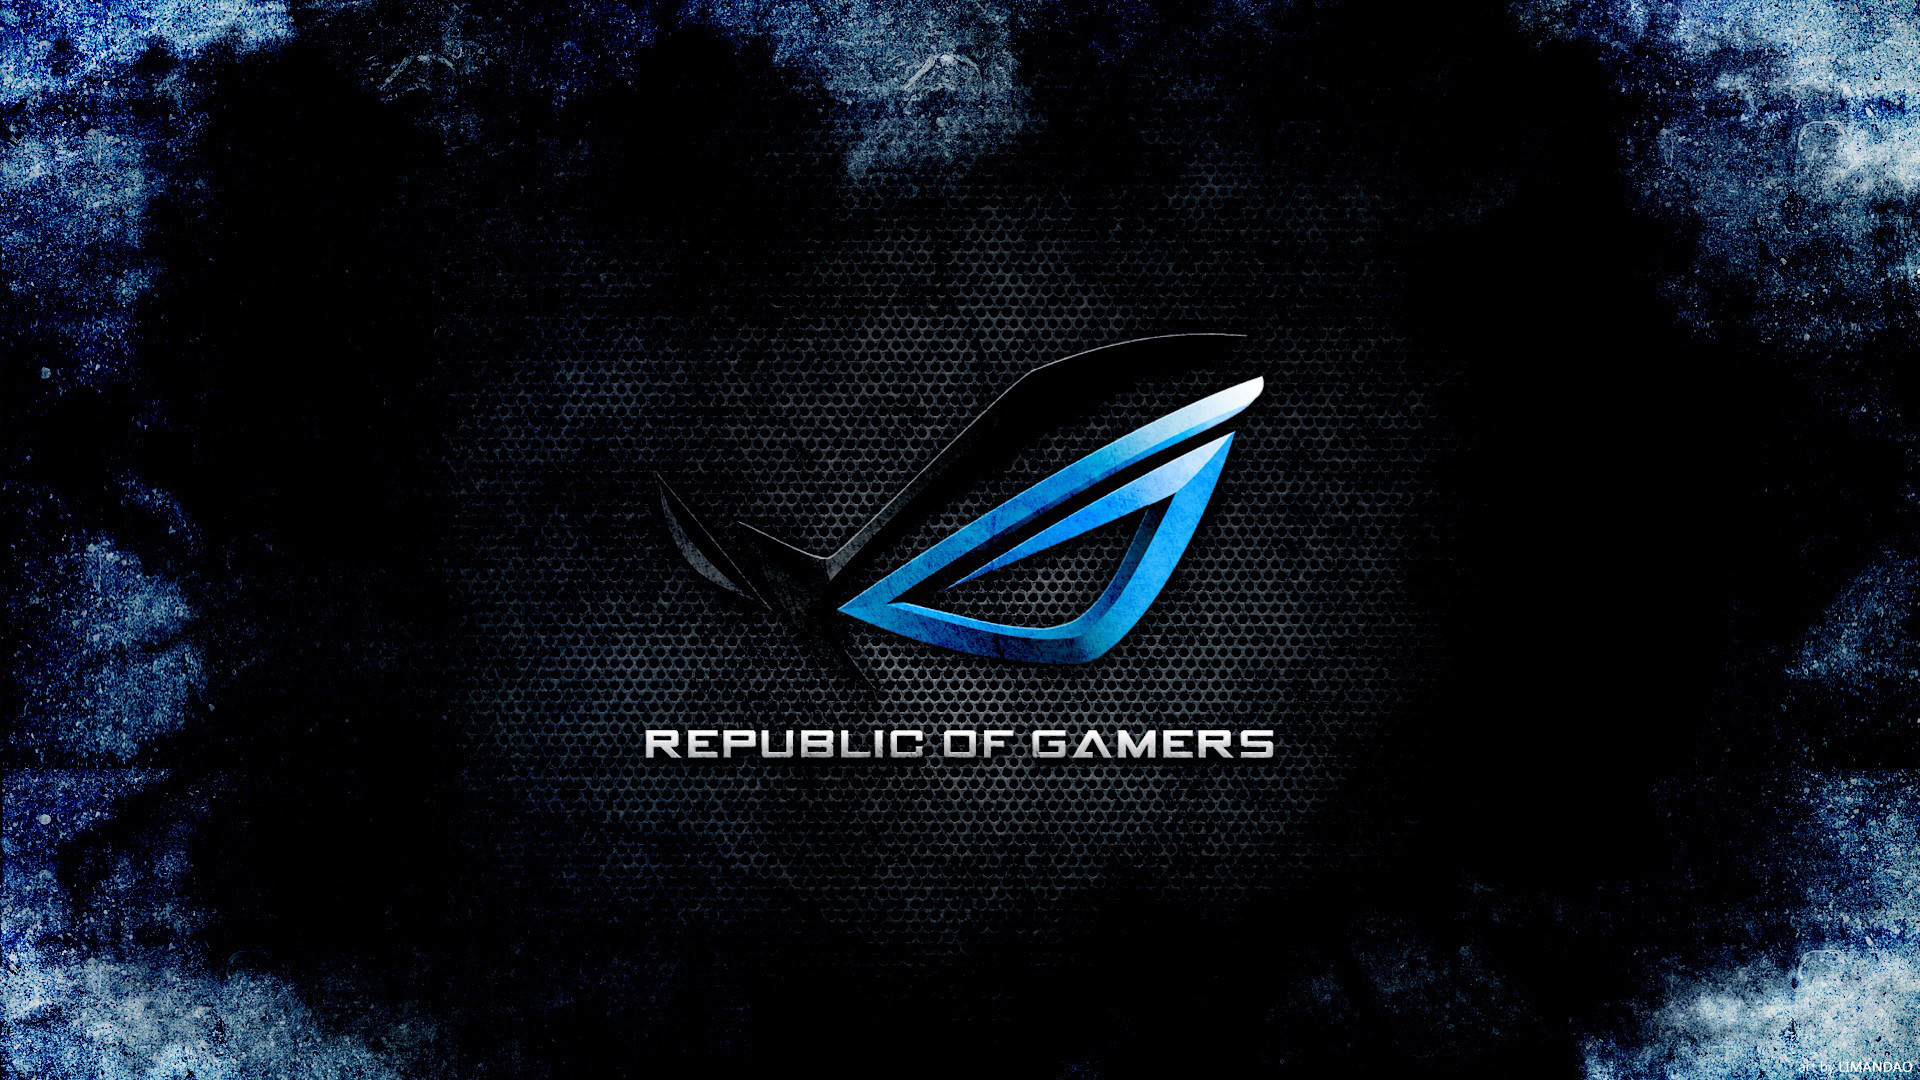 Cyberpunk Wallpapers - Republic Of Gamers Wallpaper Hd Blue , HD Wallpaper & Backgrounds